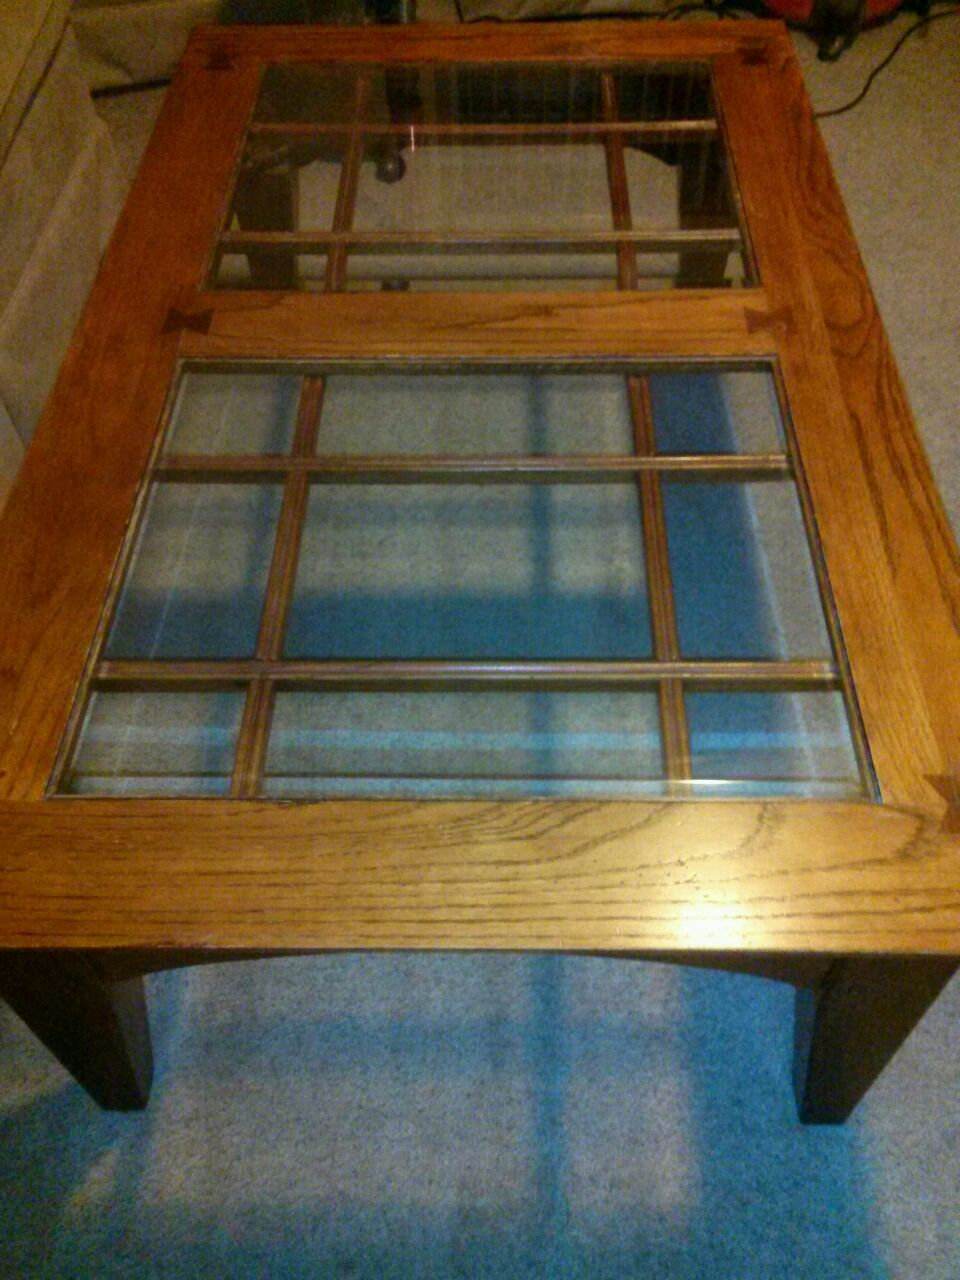 This coffee table has two beveled glass tops that make for a beautiful array of 18 lights. It has wonderful detail on the sides, the tops of the legs, and an almost hourglass shaped wood detail on all of the top and side joined angles. What will I do with this?